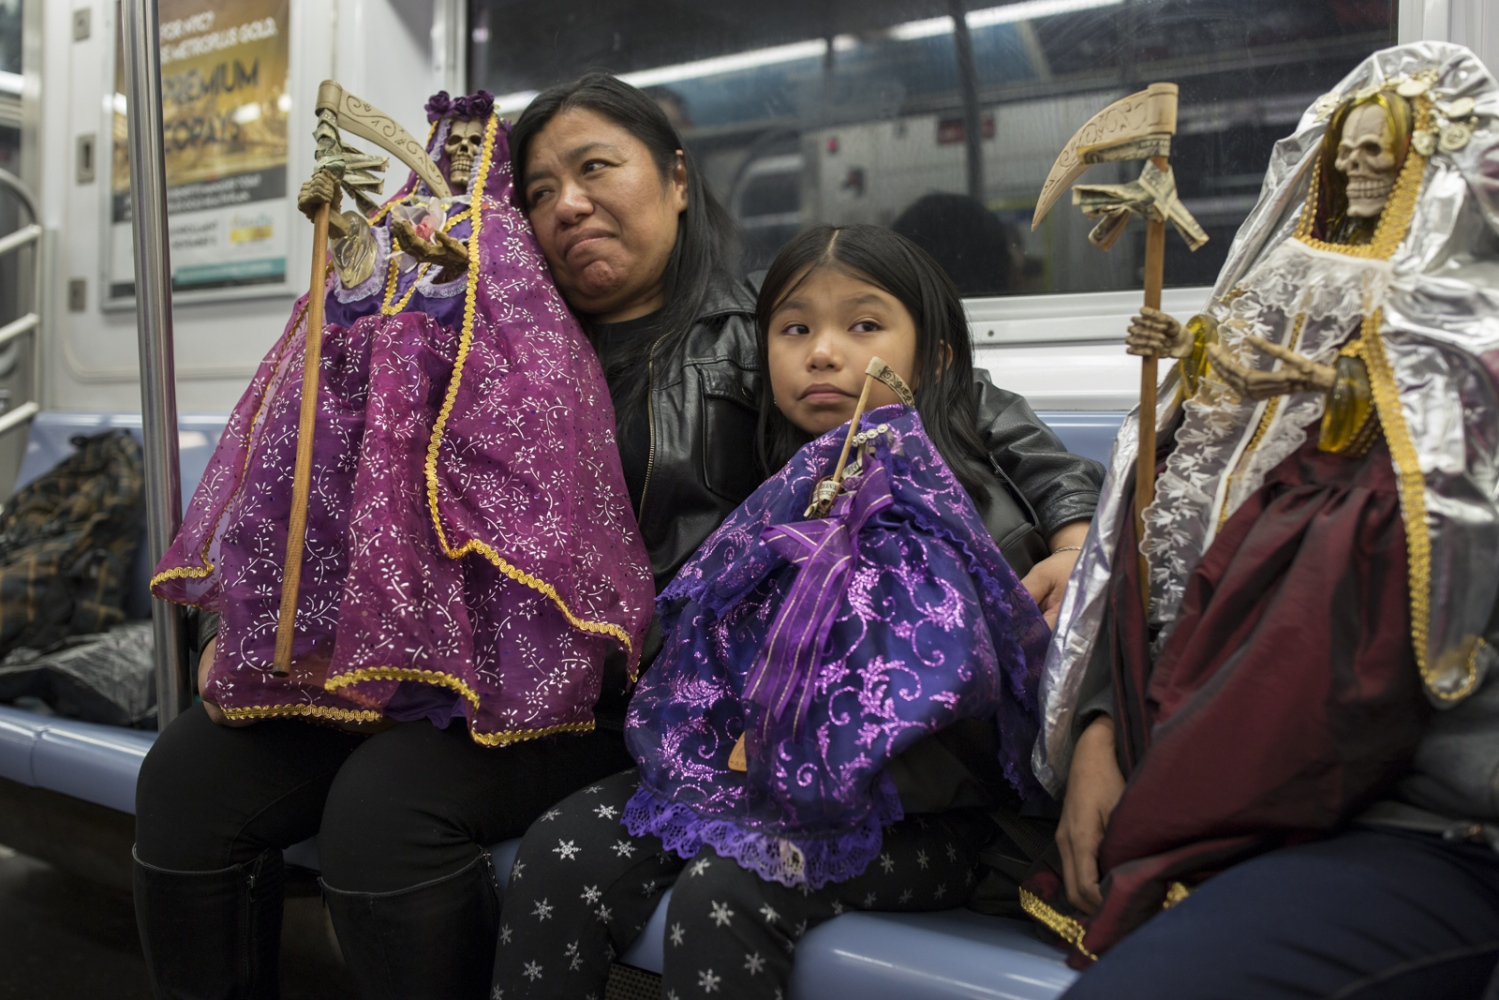 Santa Muerte (Saint of Death) devotee Rosa Perez with her daughter Karen and 2 other sons ride the New York subway with their Santa Muerte statuettes after attending a Santa Muerte event in Queens, New York. Perez became a devotee after an incident in which she almost died.